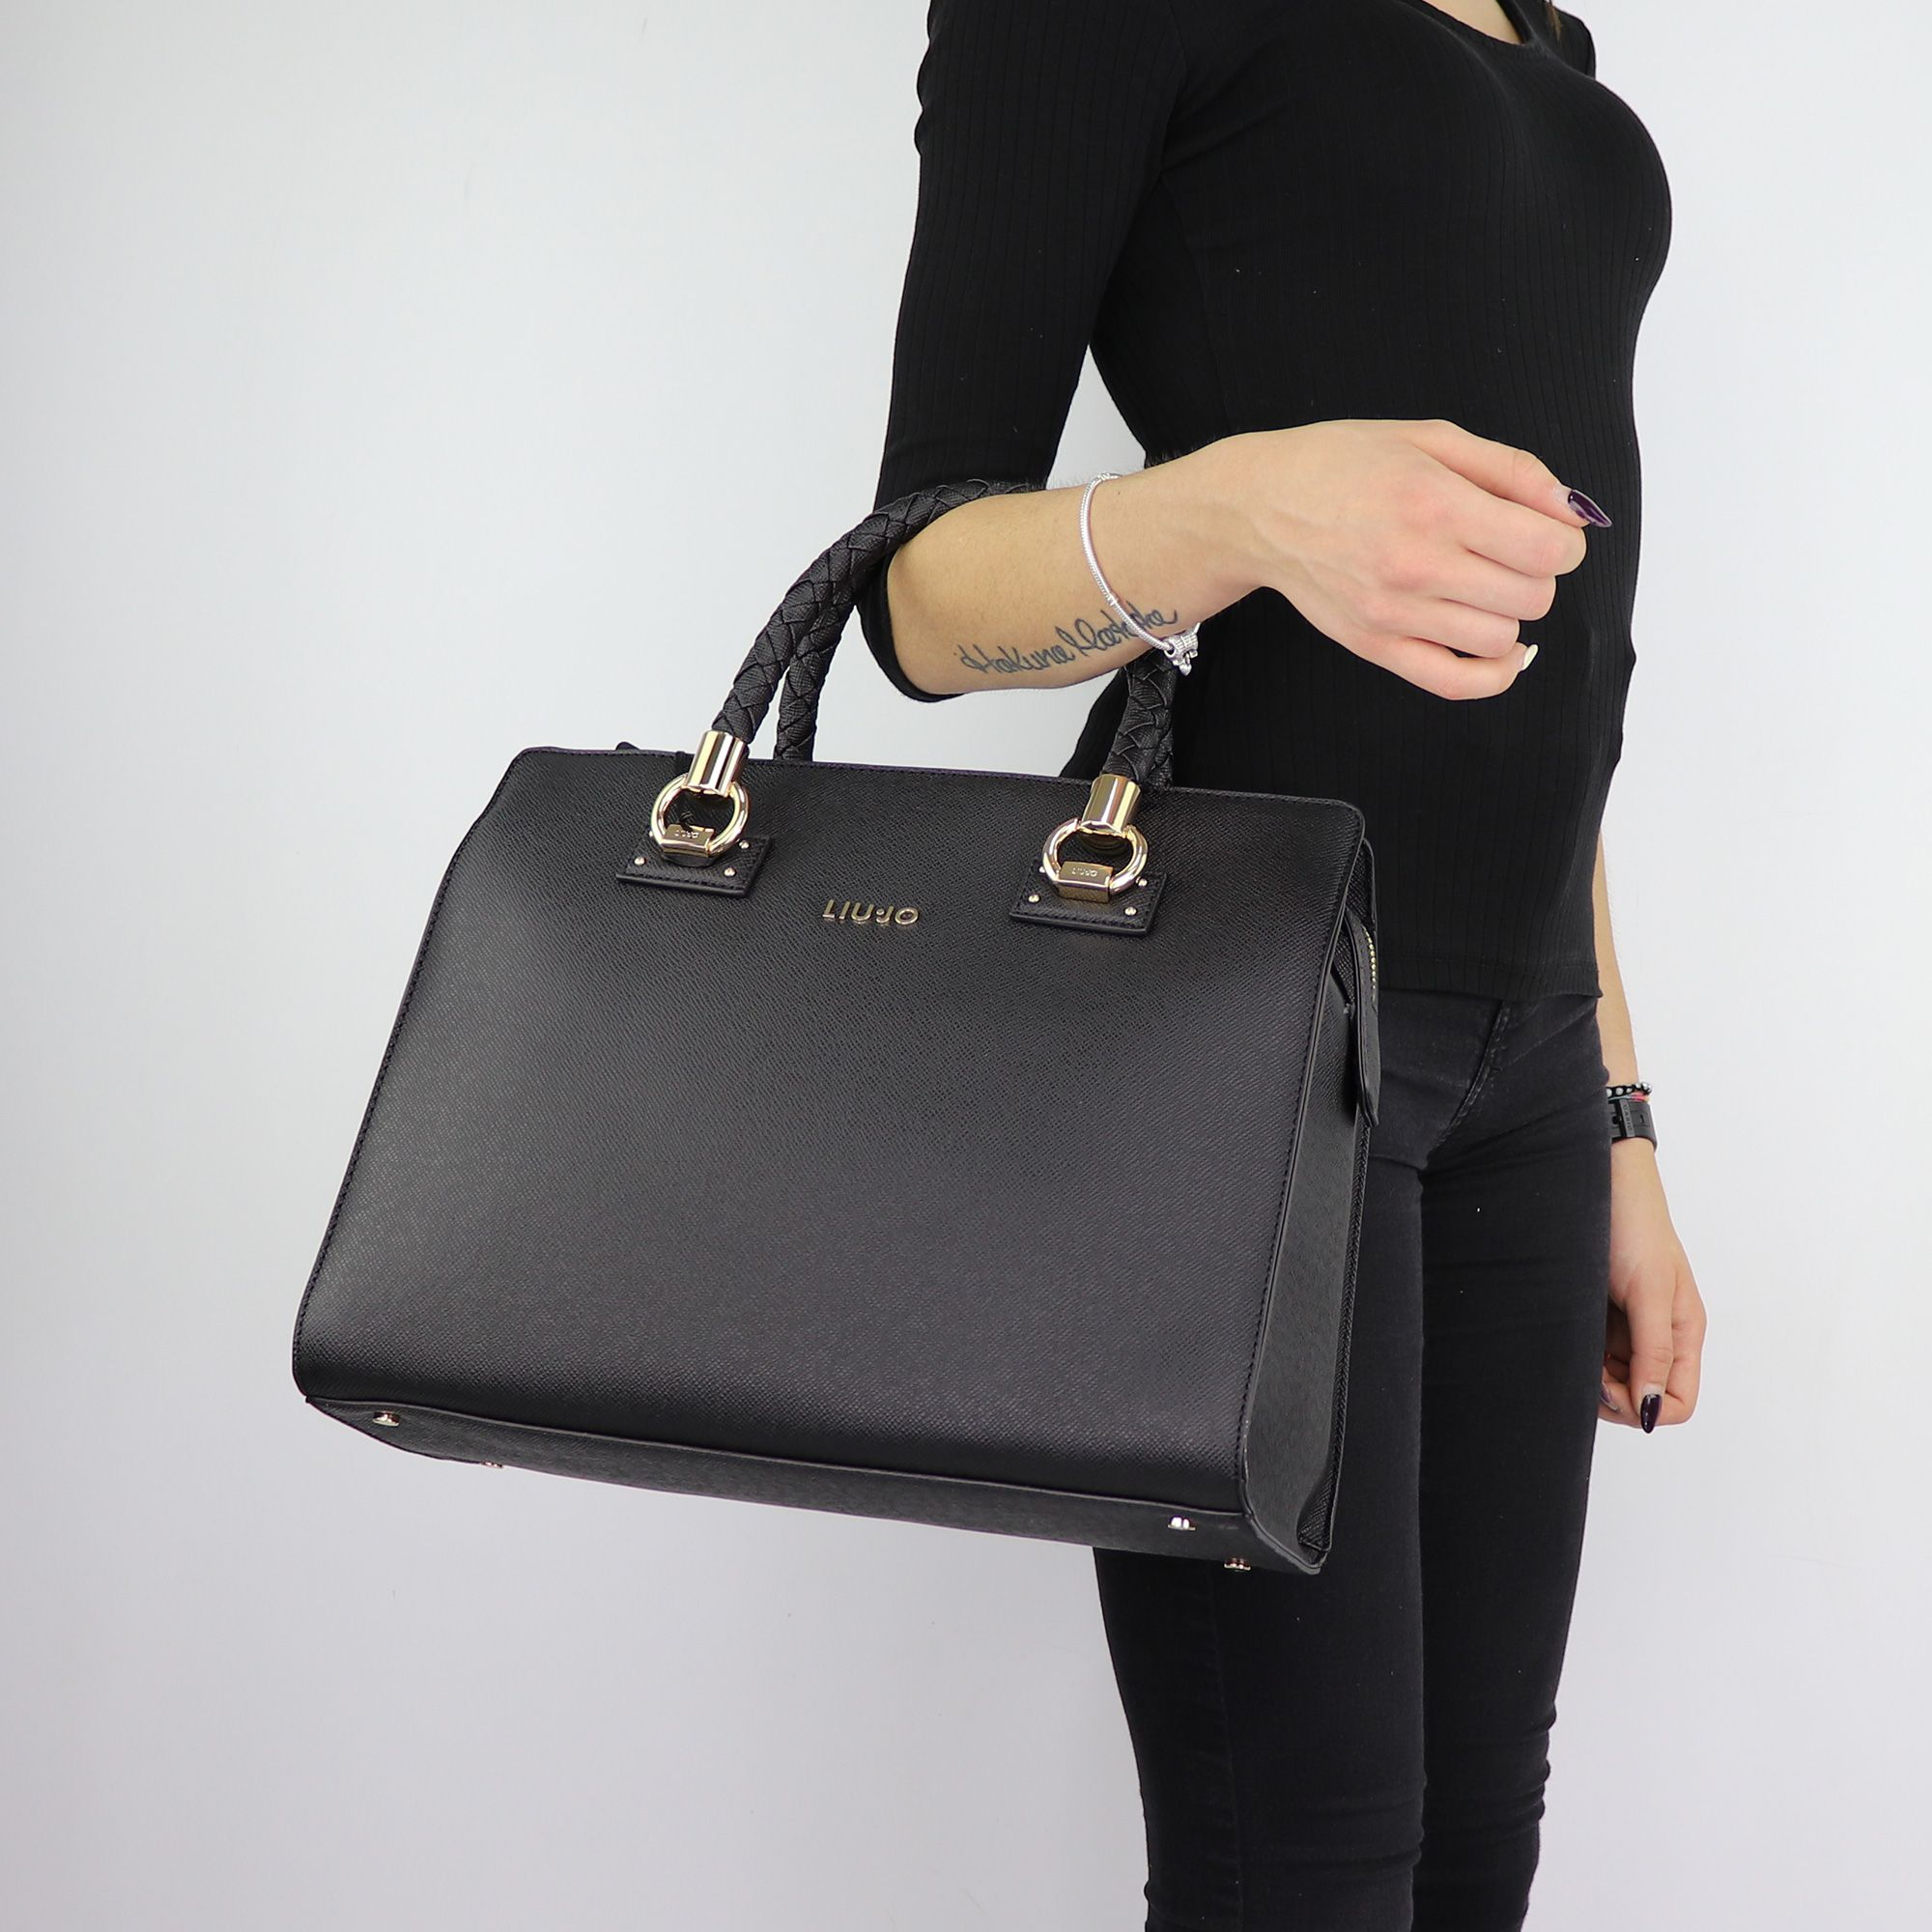 Borsa Liu Jo bauletto nero Satchel Manhattan N68099 E0087 - In More ... 4d0fb026dd0